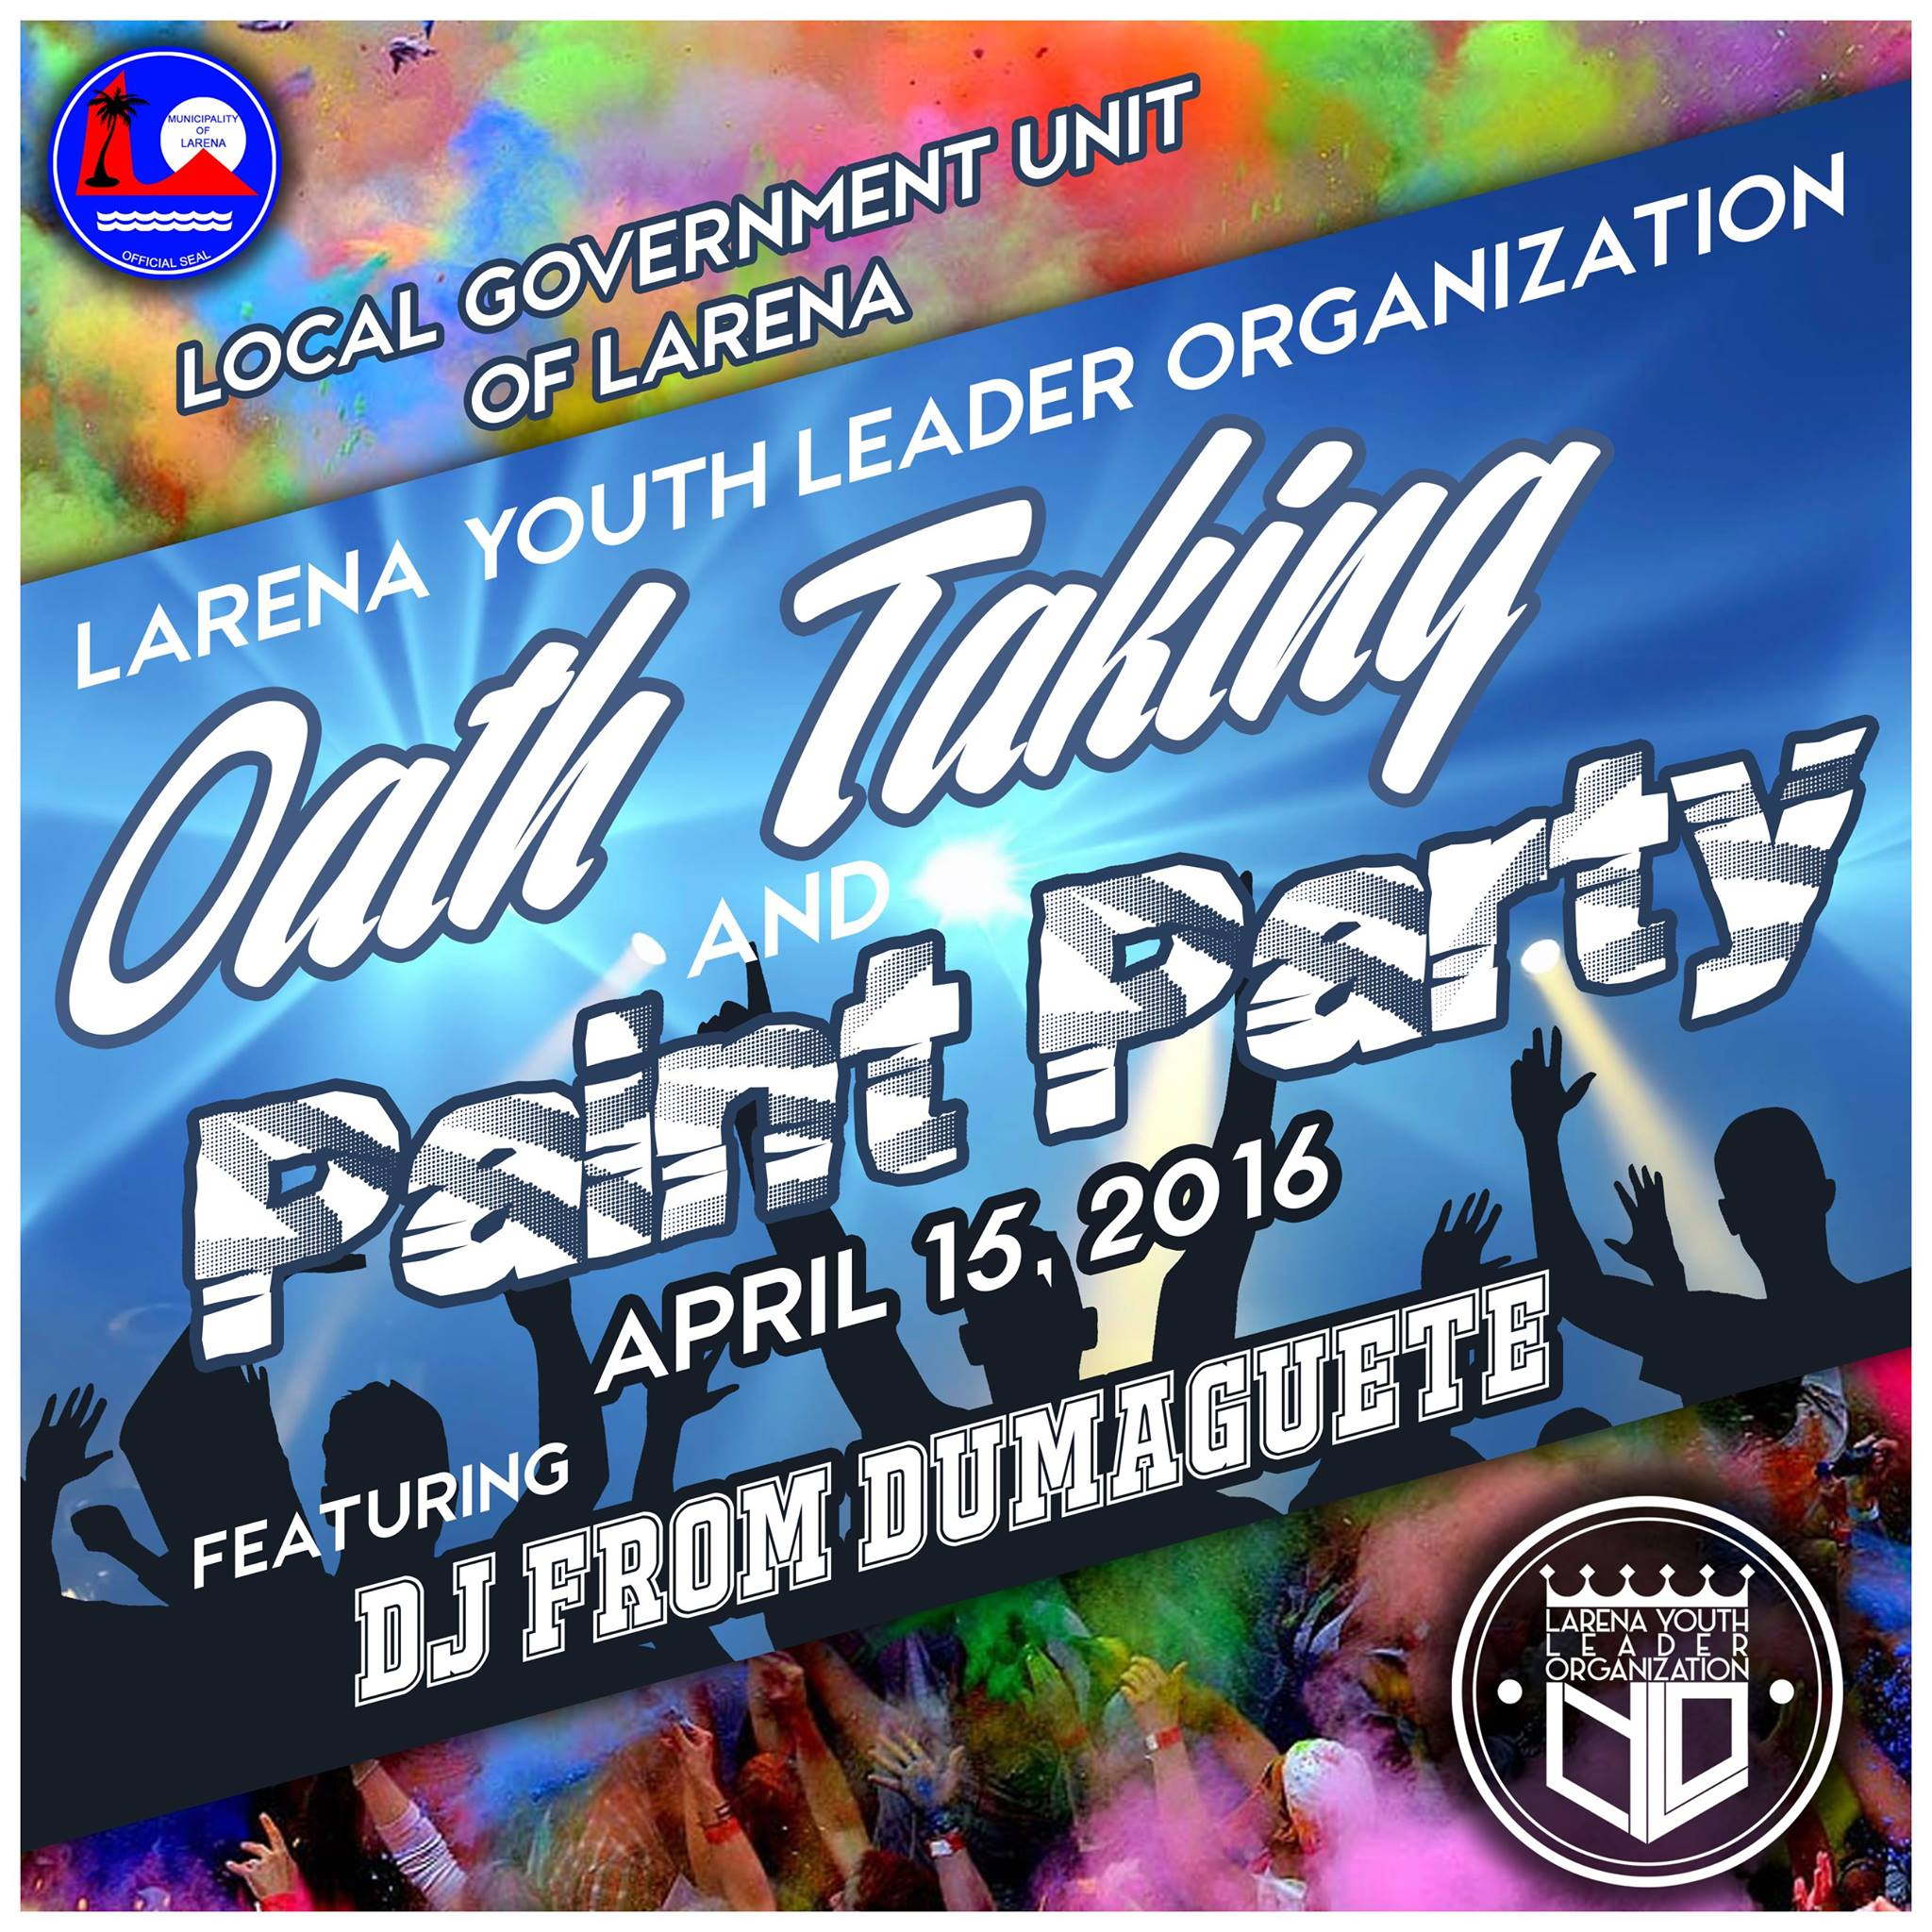 larena-youth-leader-organization-oath-taking-and-paint-party